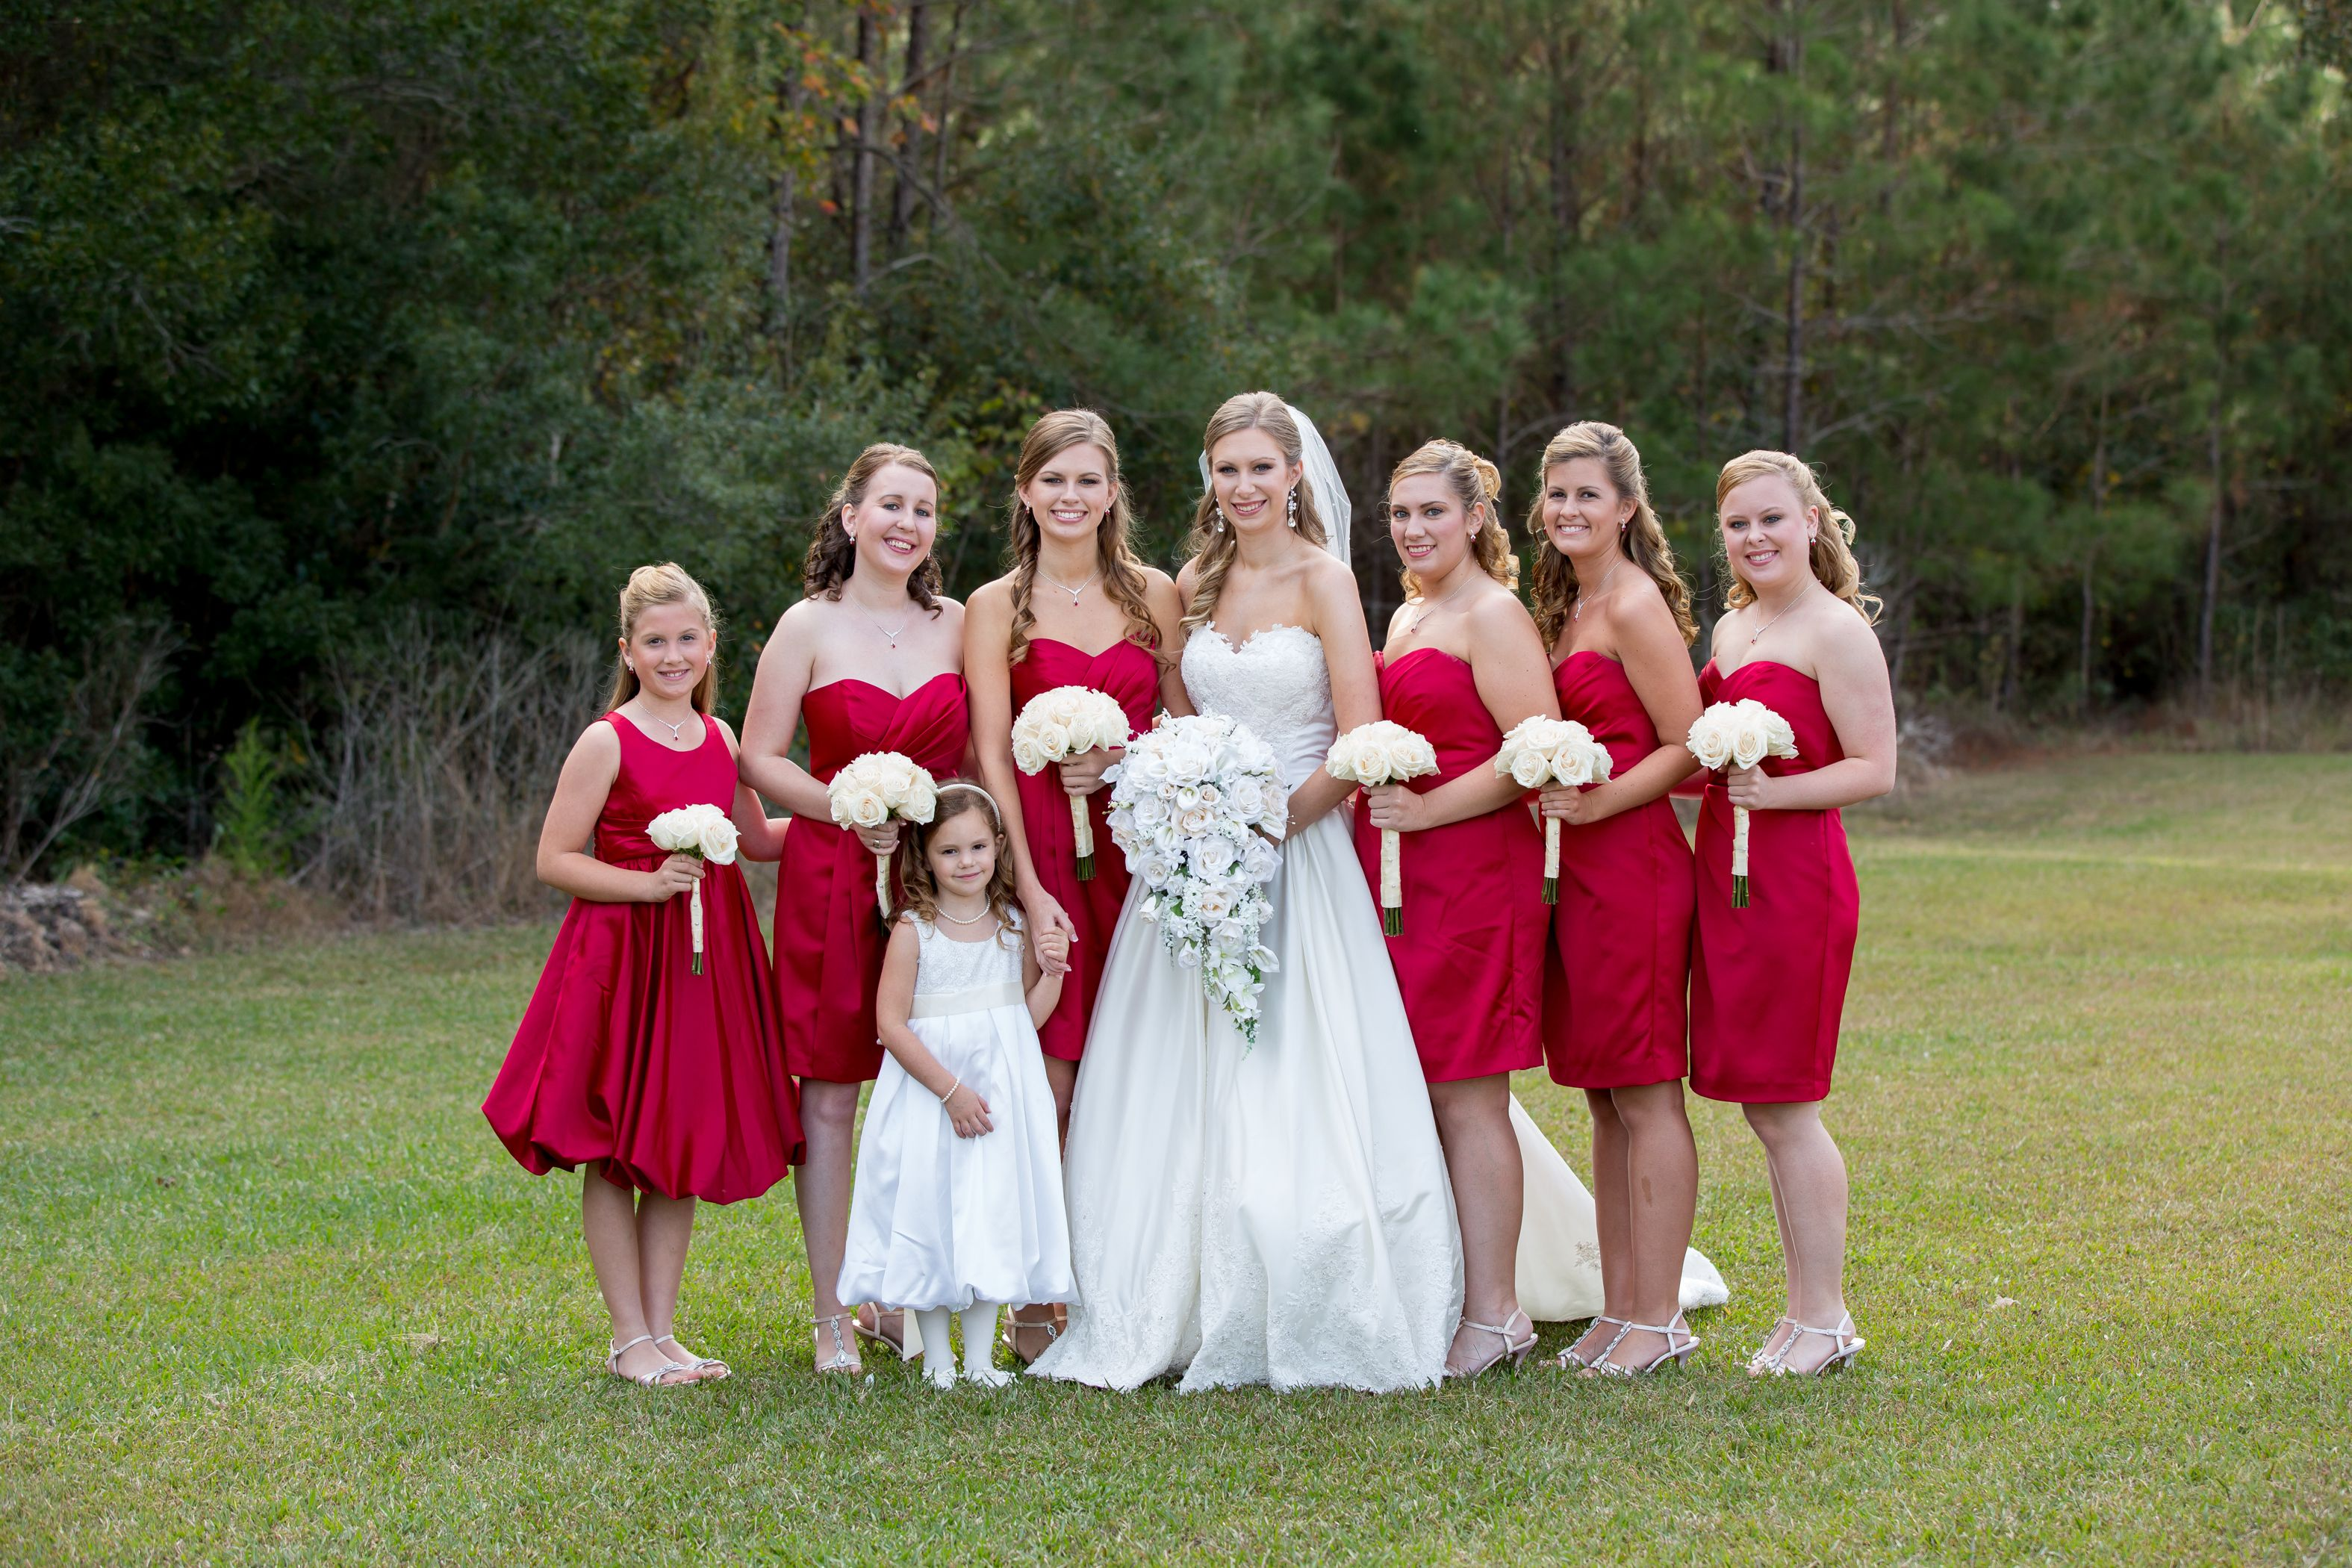 Bridesmaid and Bride- Red dresses and white roses.